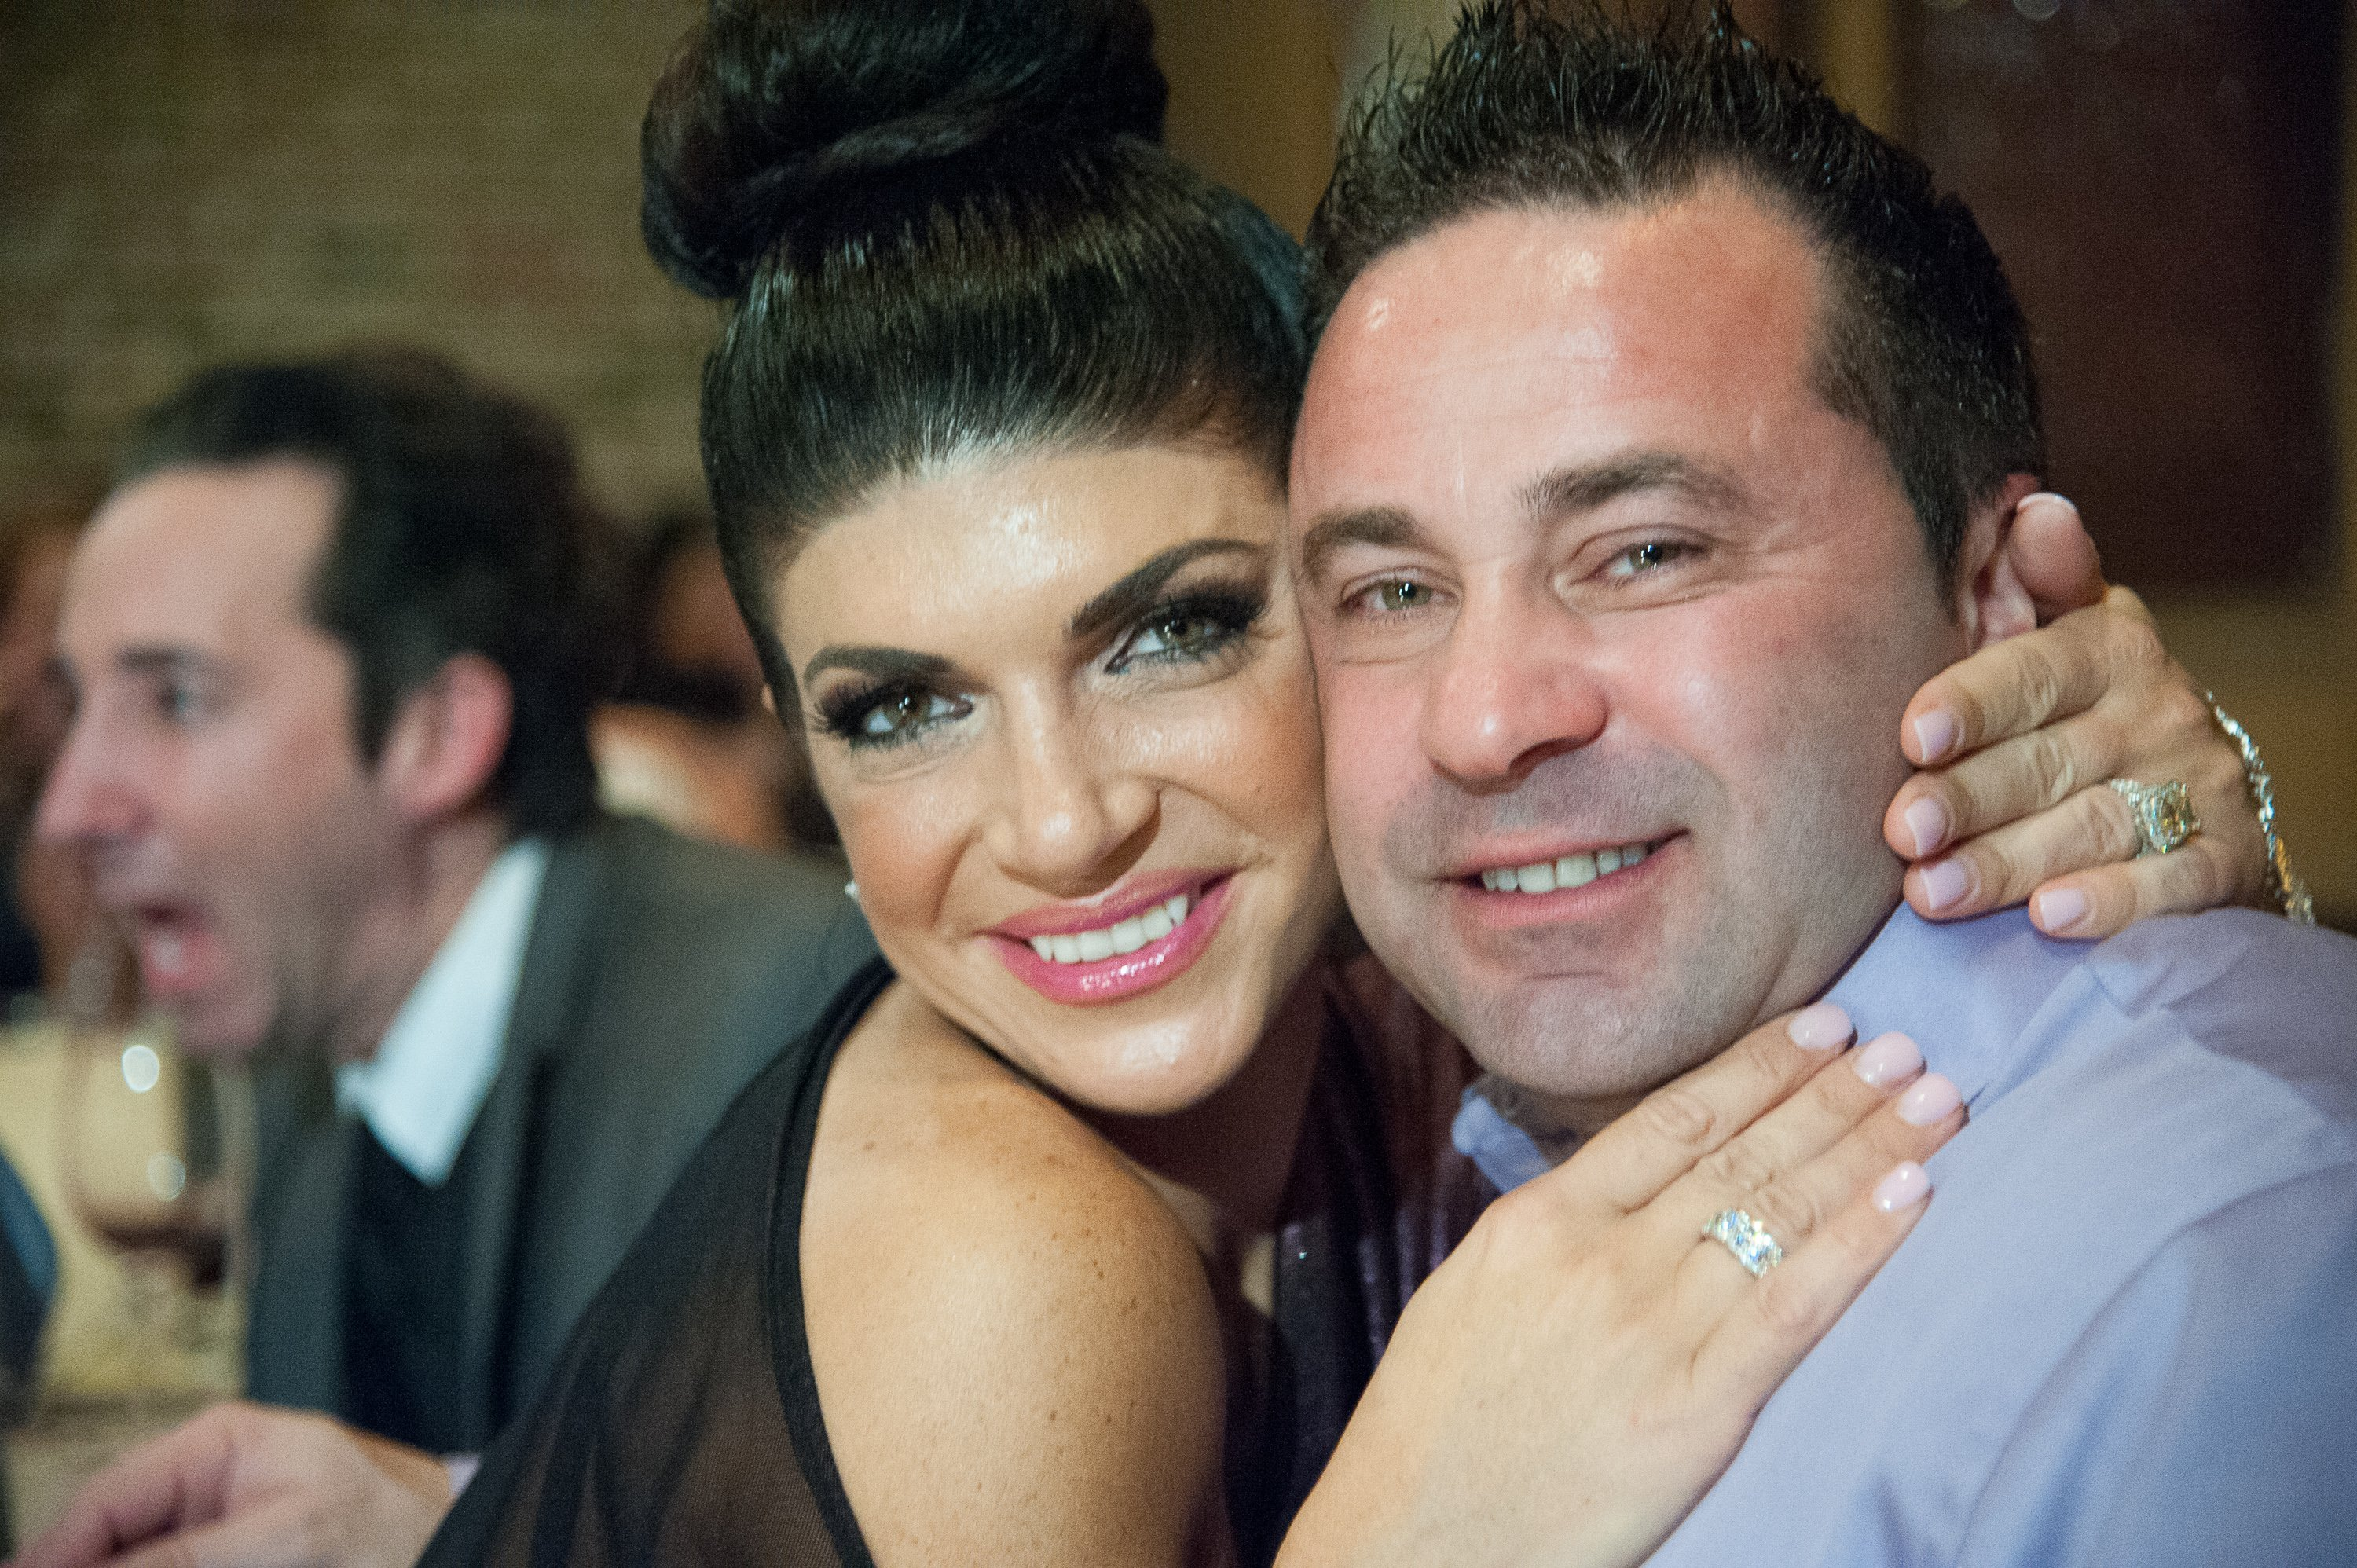 Teresa Giudice and Joe Giudice attend the Posche Fashion show at The Bottagra on December 3, 2012. | Source: Getty Images